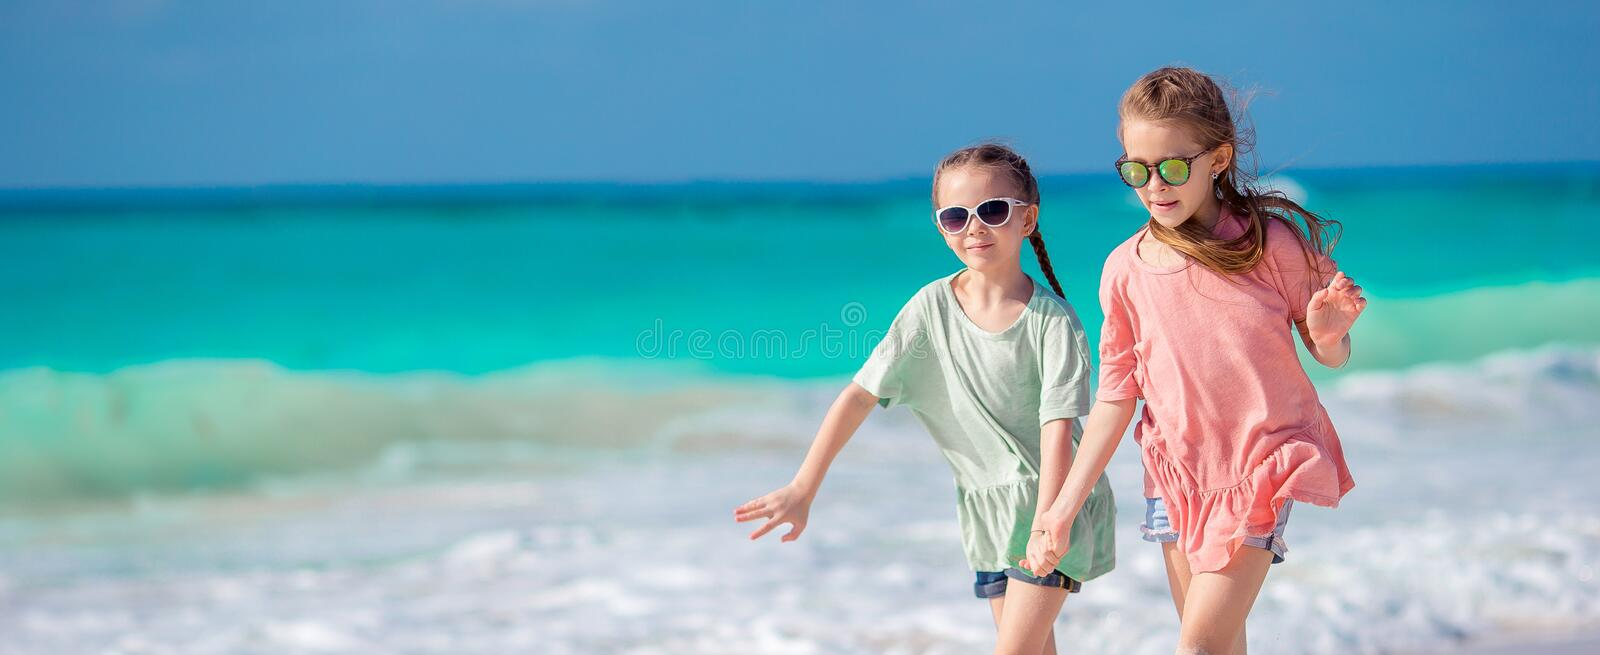 Little happy kids having a lot of fun at tropical beach playing together. Adorable girls dancing on caribbean island royalty free stock photos